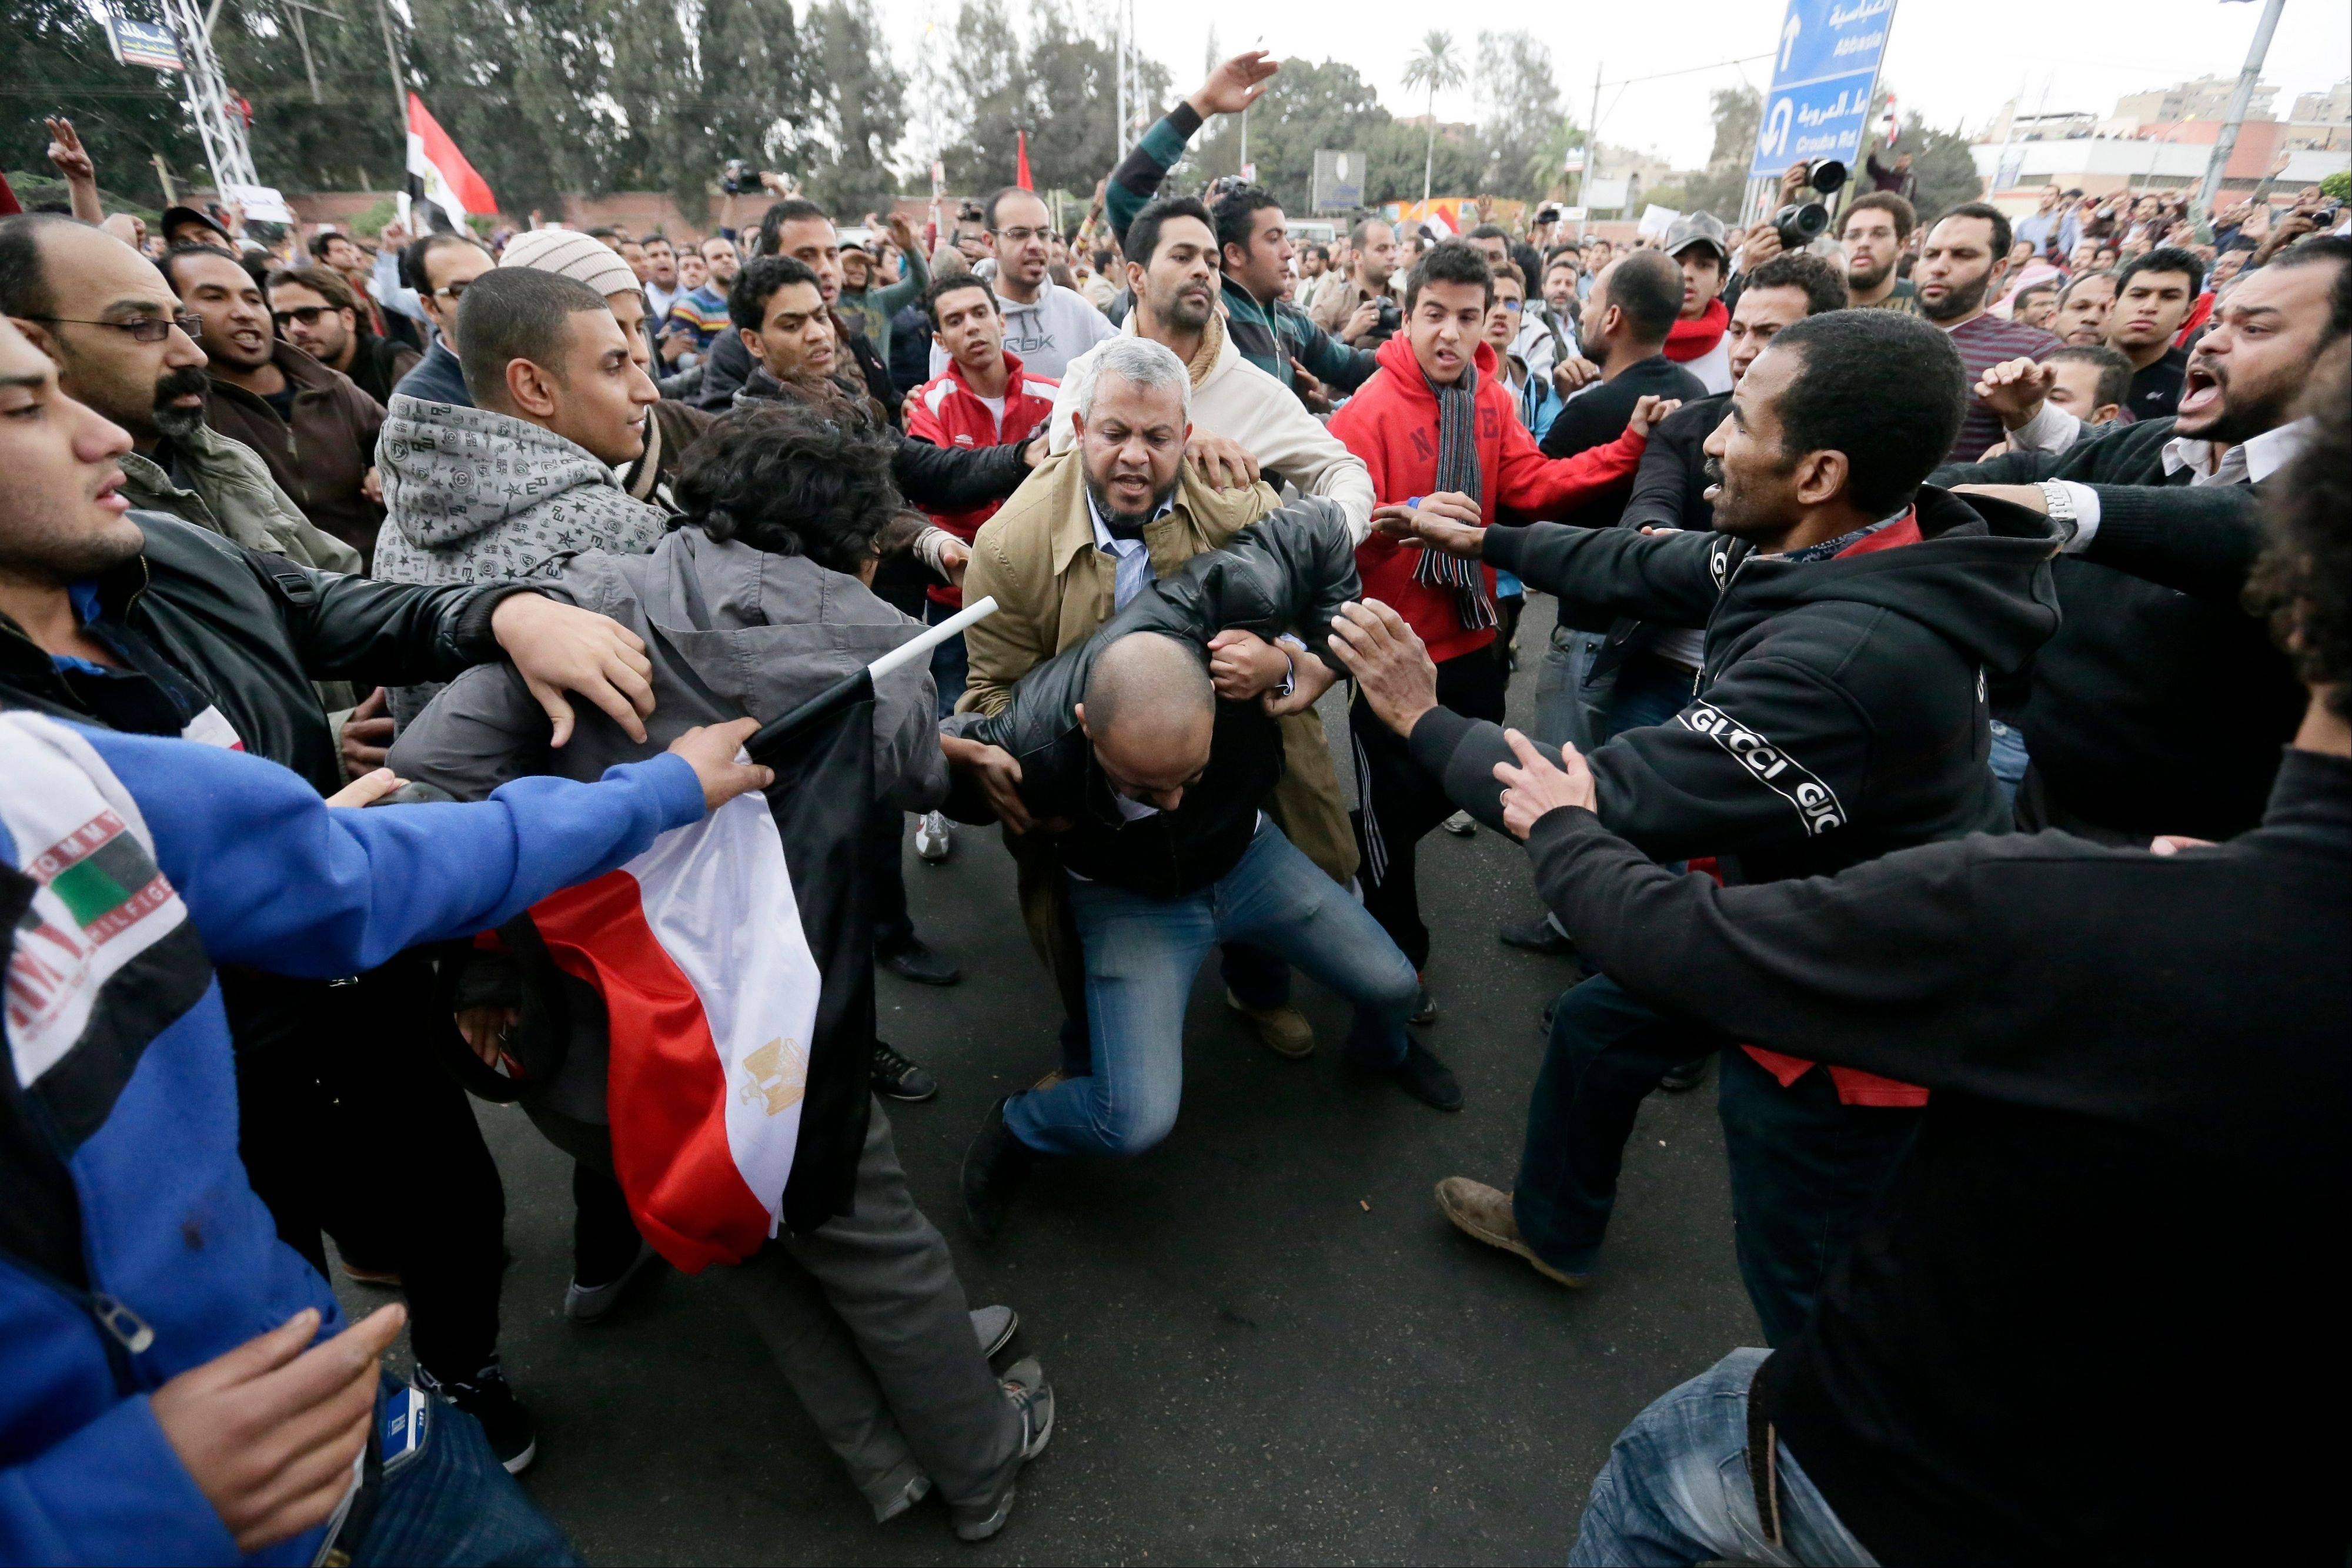 Associated Press File Photo In this Dec. 5 photo, Egyptian President Mohammed Morsi�s supporters beat an opponent, center, during clashes outside the presidential palace, in Cairo, Egypt. The scene from bloody clashes outside the presidential palace a week ago hangs over Egypt�s political crisis, as a daunting sign of how much more violent the confrontation between Morsi�s Islamist supporters and the opposition that has launched a giant wave of protests against him can become.